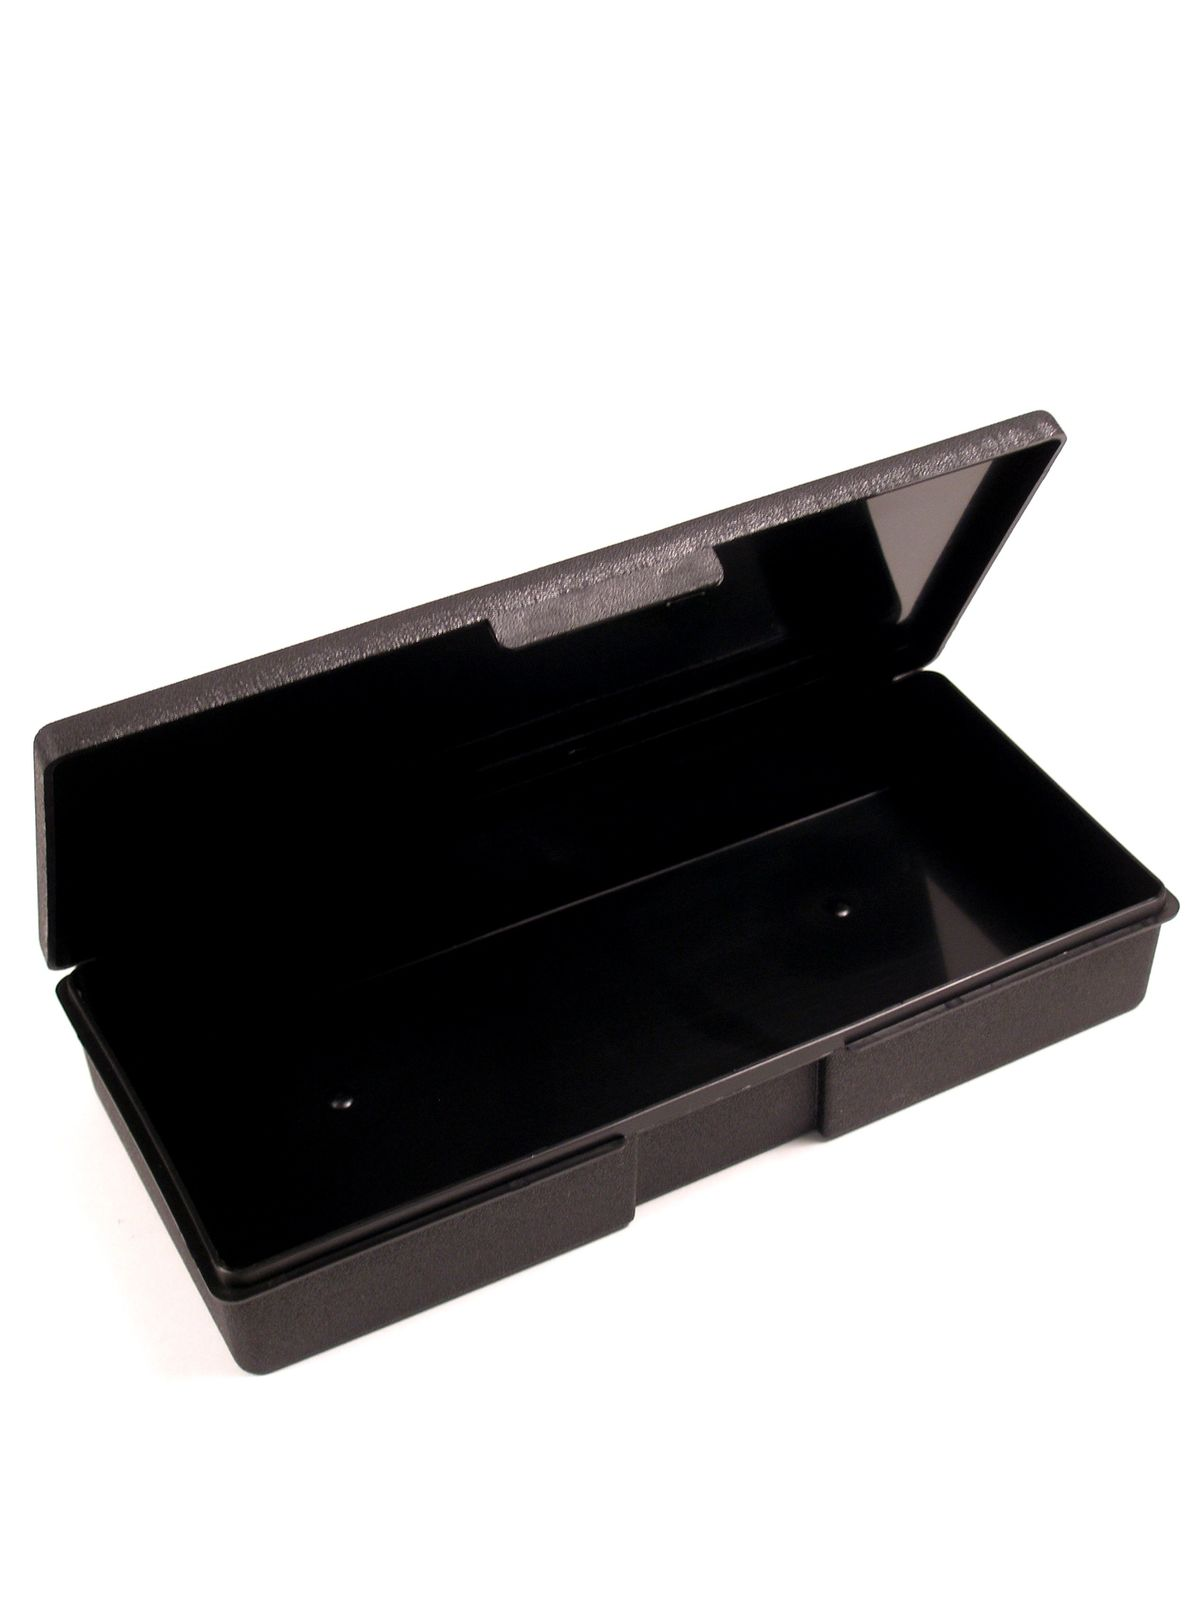 Pencil and Marker Storage Box